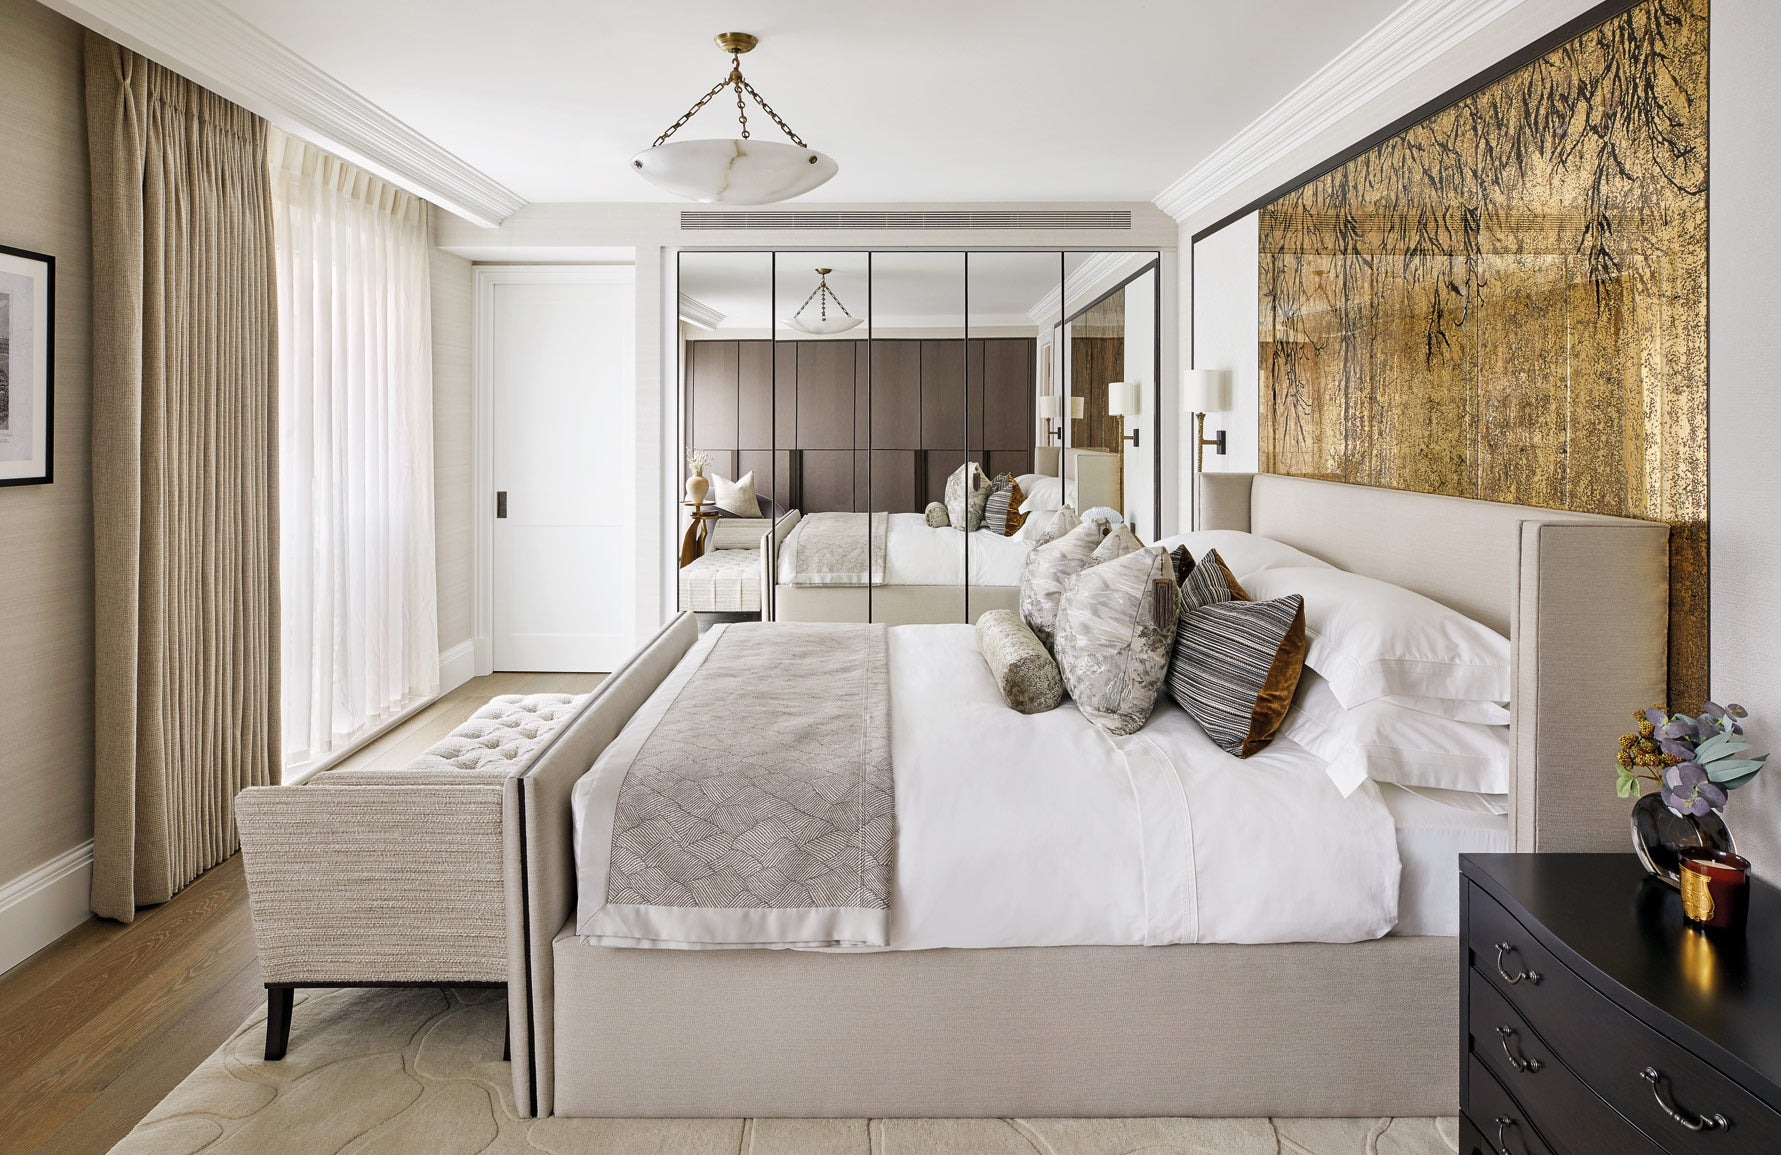 How To Dress A Bed | Hotel Bed Tips | Interior by Millier | Shop luxury bedding at LuxDeco.com